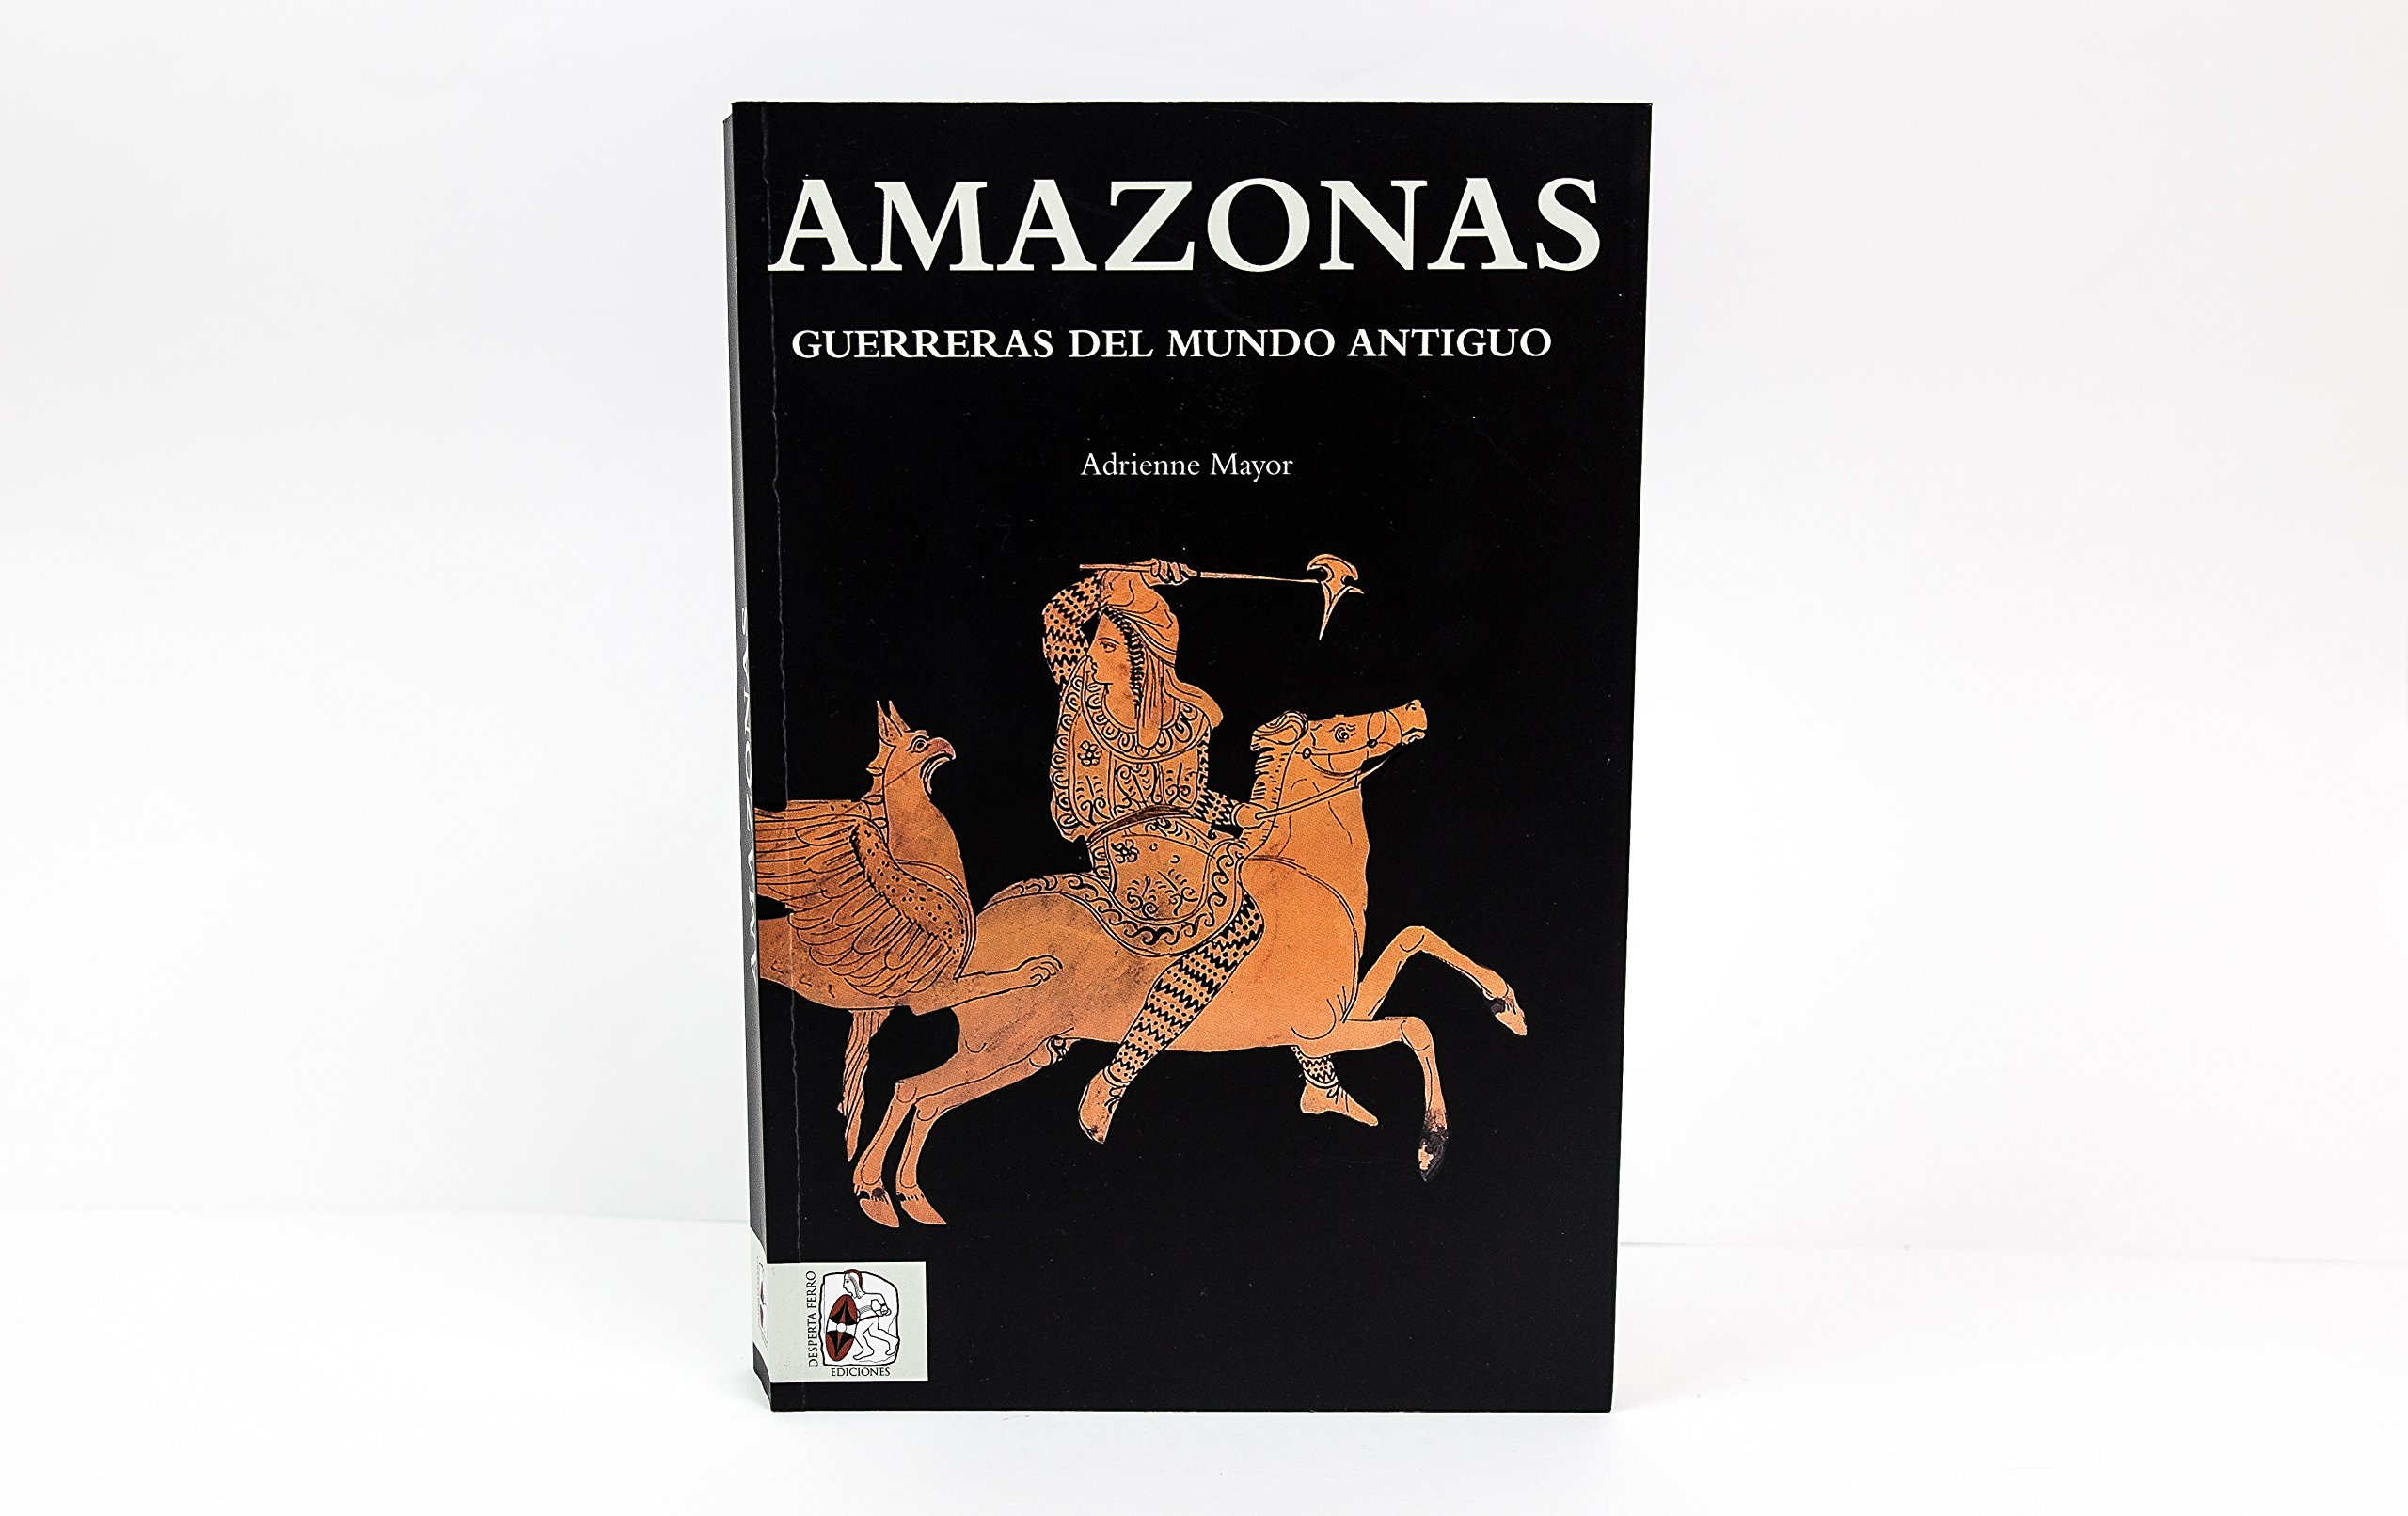 Amazonas : guerreras del Mundo Antiguo: Adrienne Mayor: 9788494627538: Amazon.com: Books